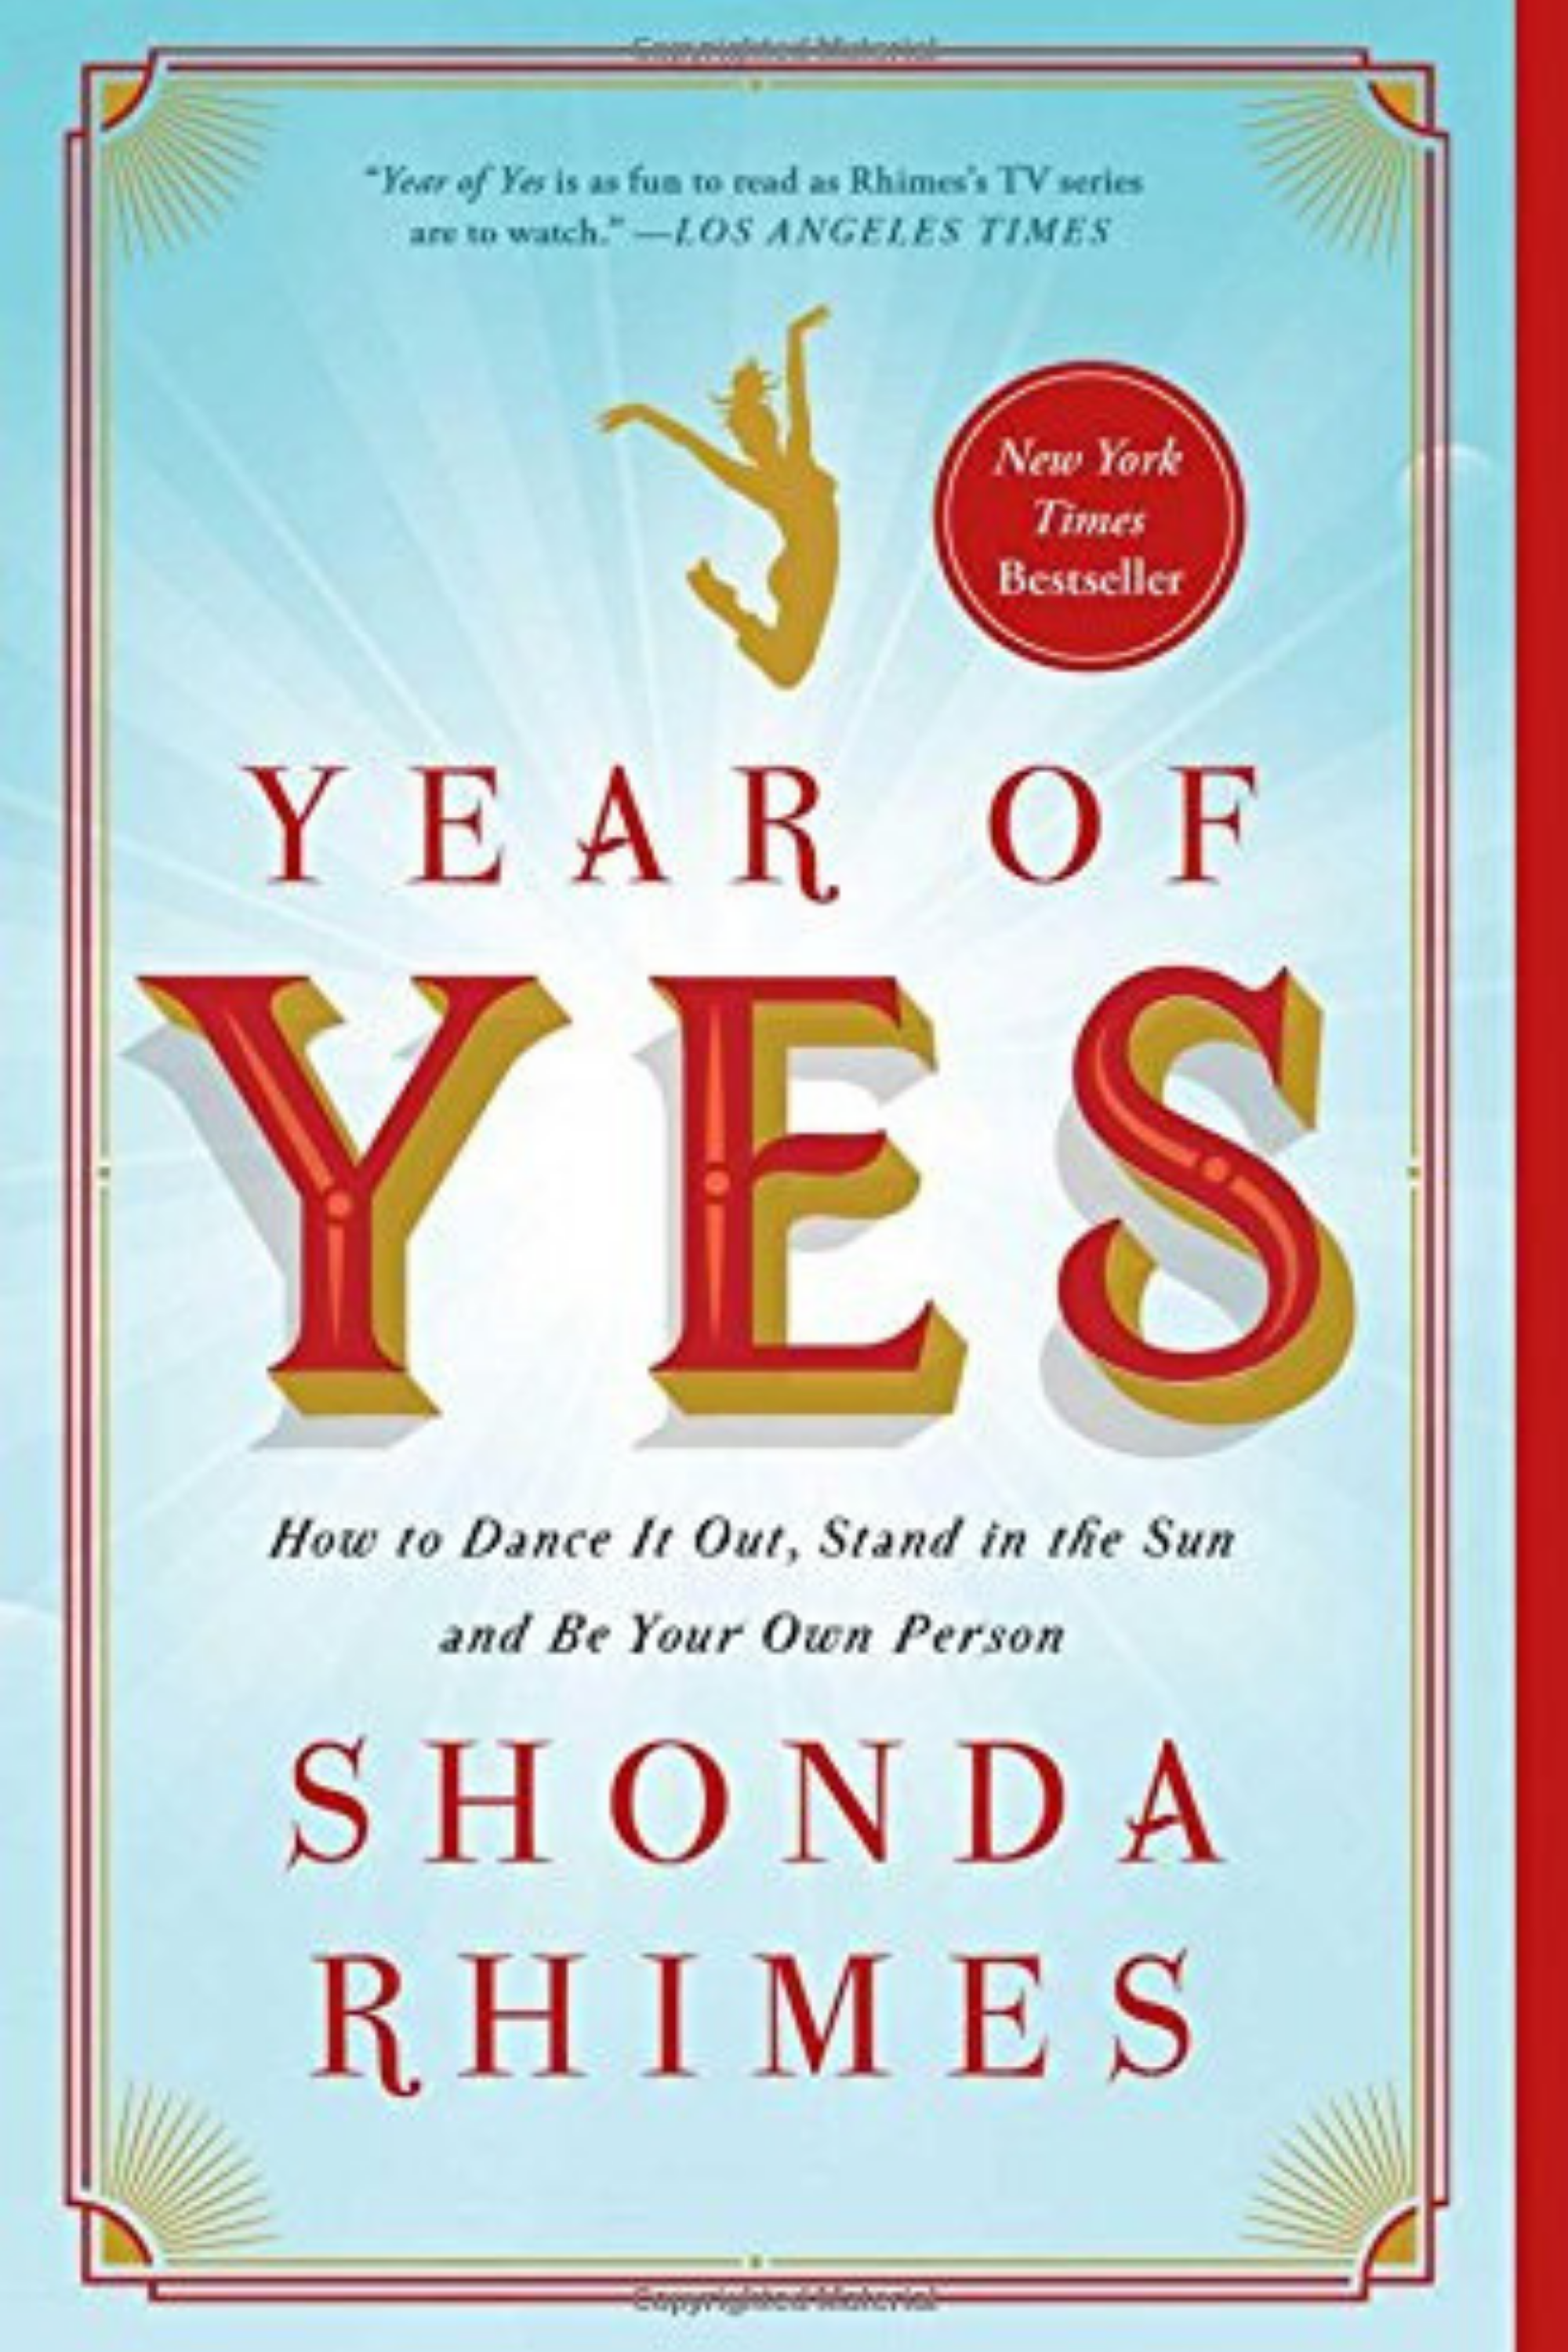 Year of Yes Shonda Rhimes Courtney Elmer.png